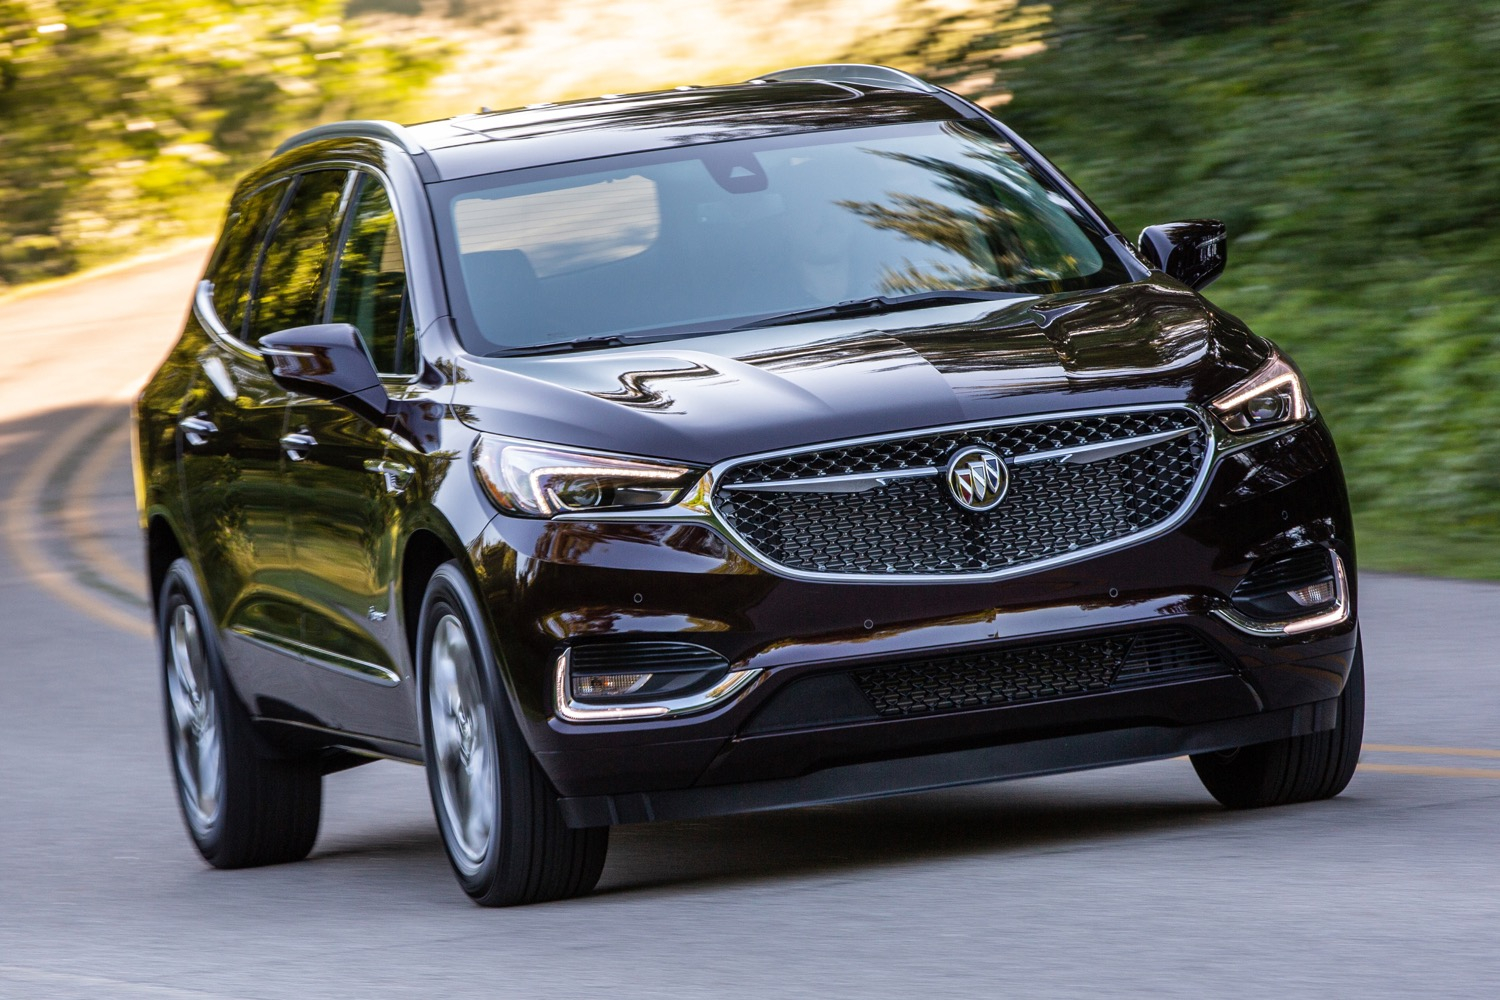 Buick Enclave Discount Totals $4,750 In February 2020 | Gm 2022 Buick Enclave Avenir Engine, Specs, Lease